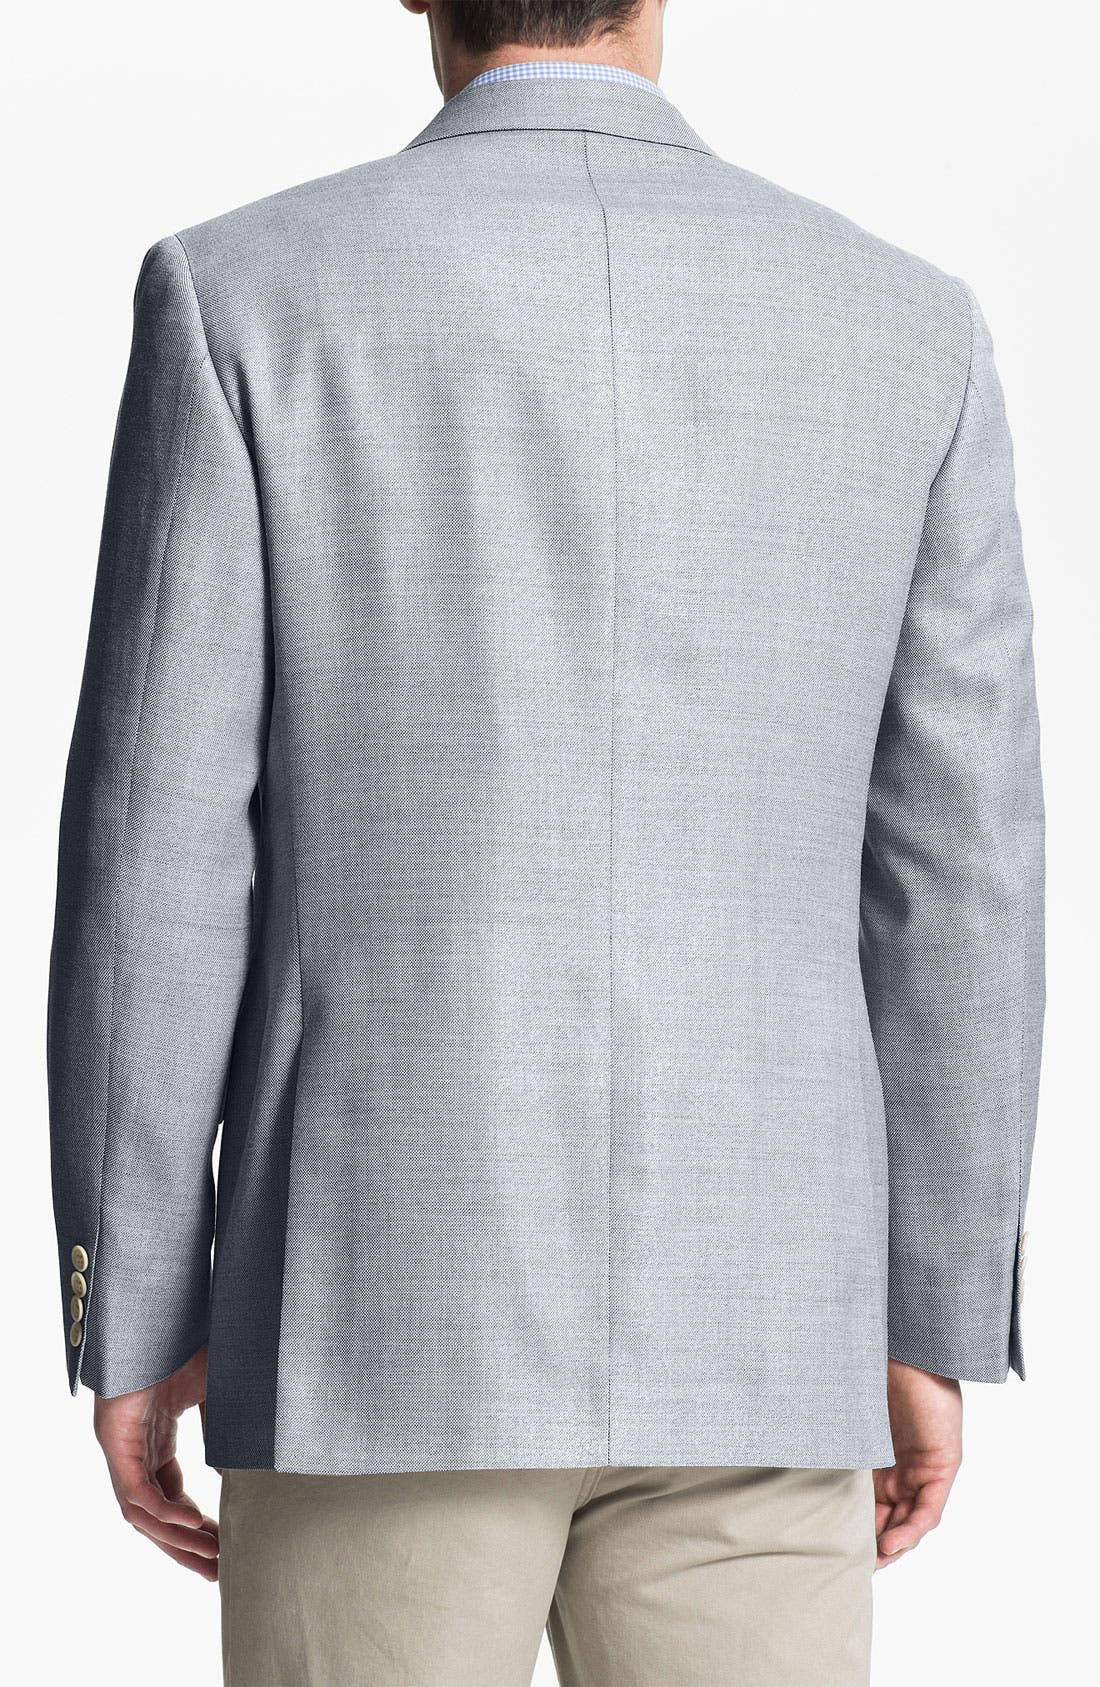 Alternate Image 2  - Joseph Abboud Silk Blend Sportcoat